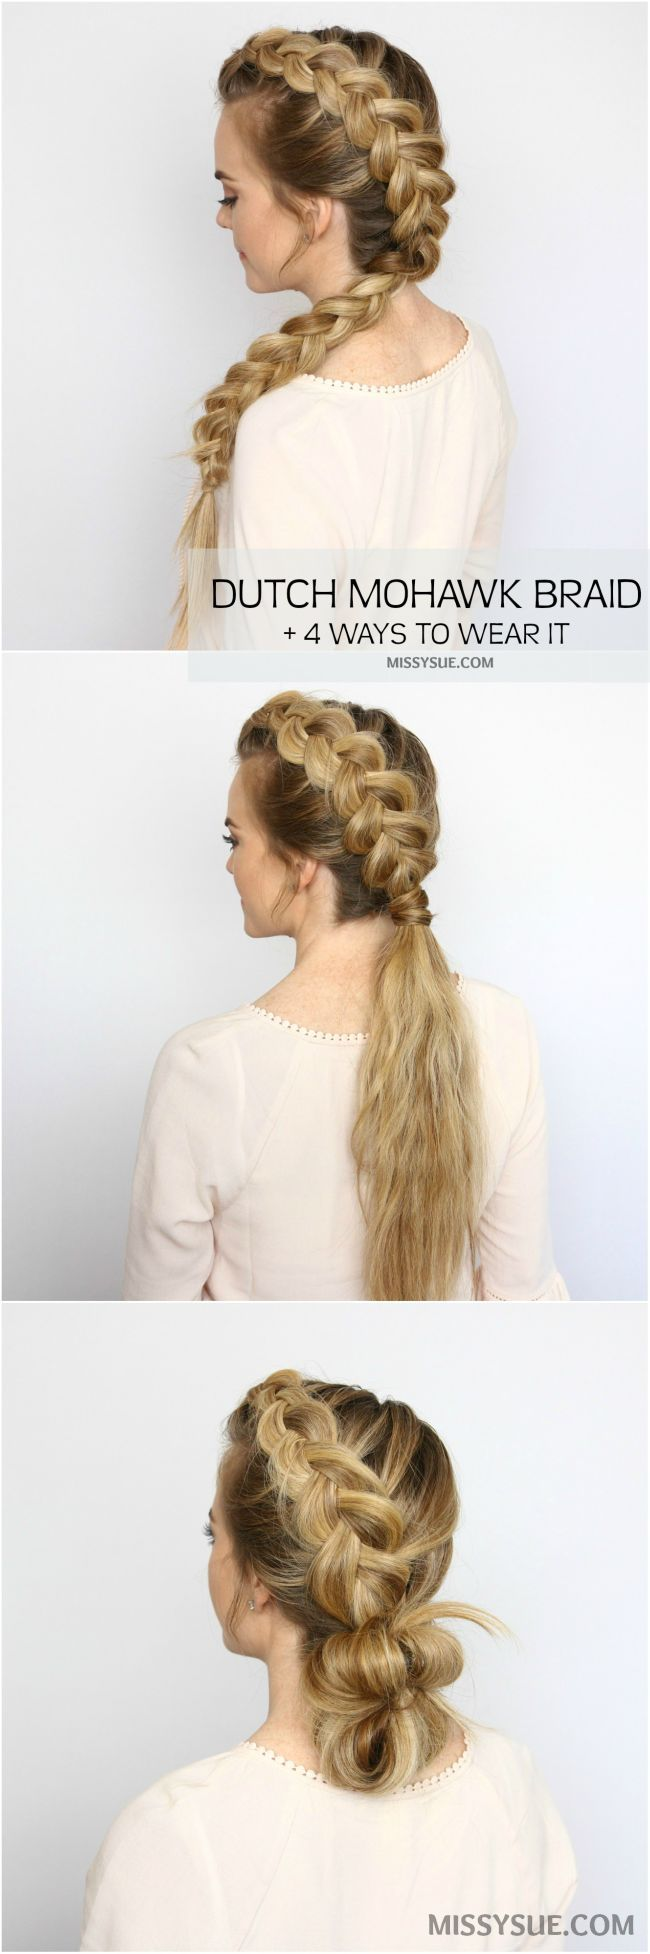 Dutch mohawk braid hairstyles pinterest braid hairstyles dutch